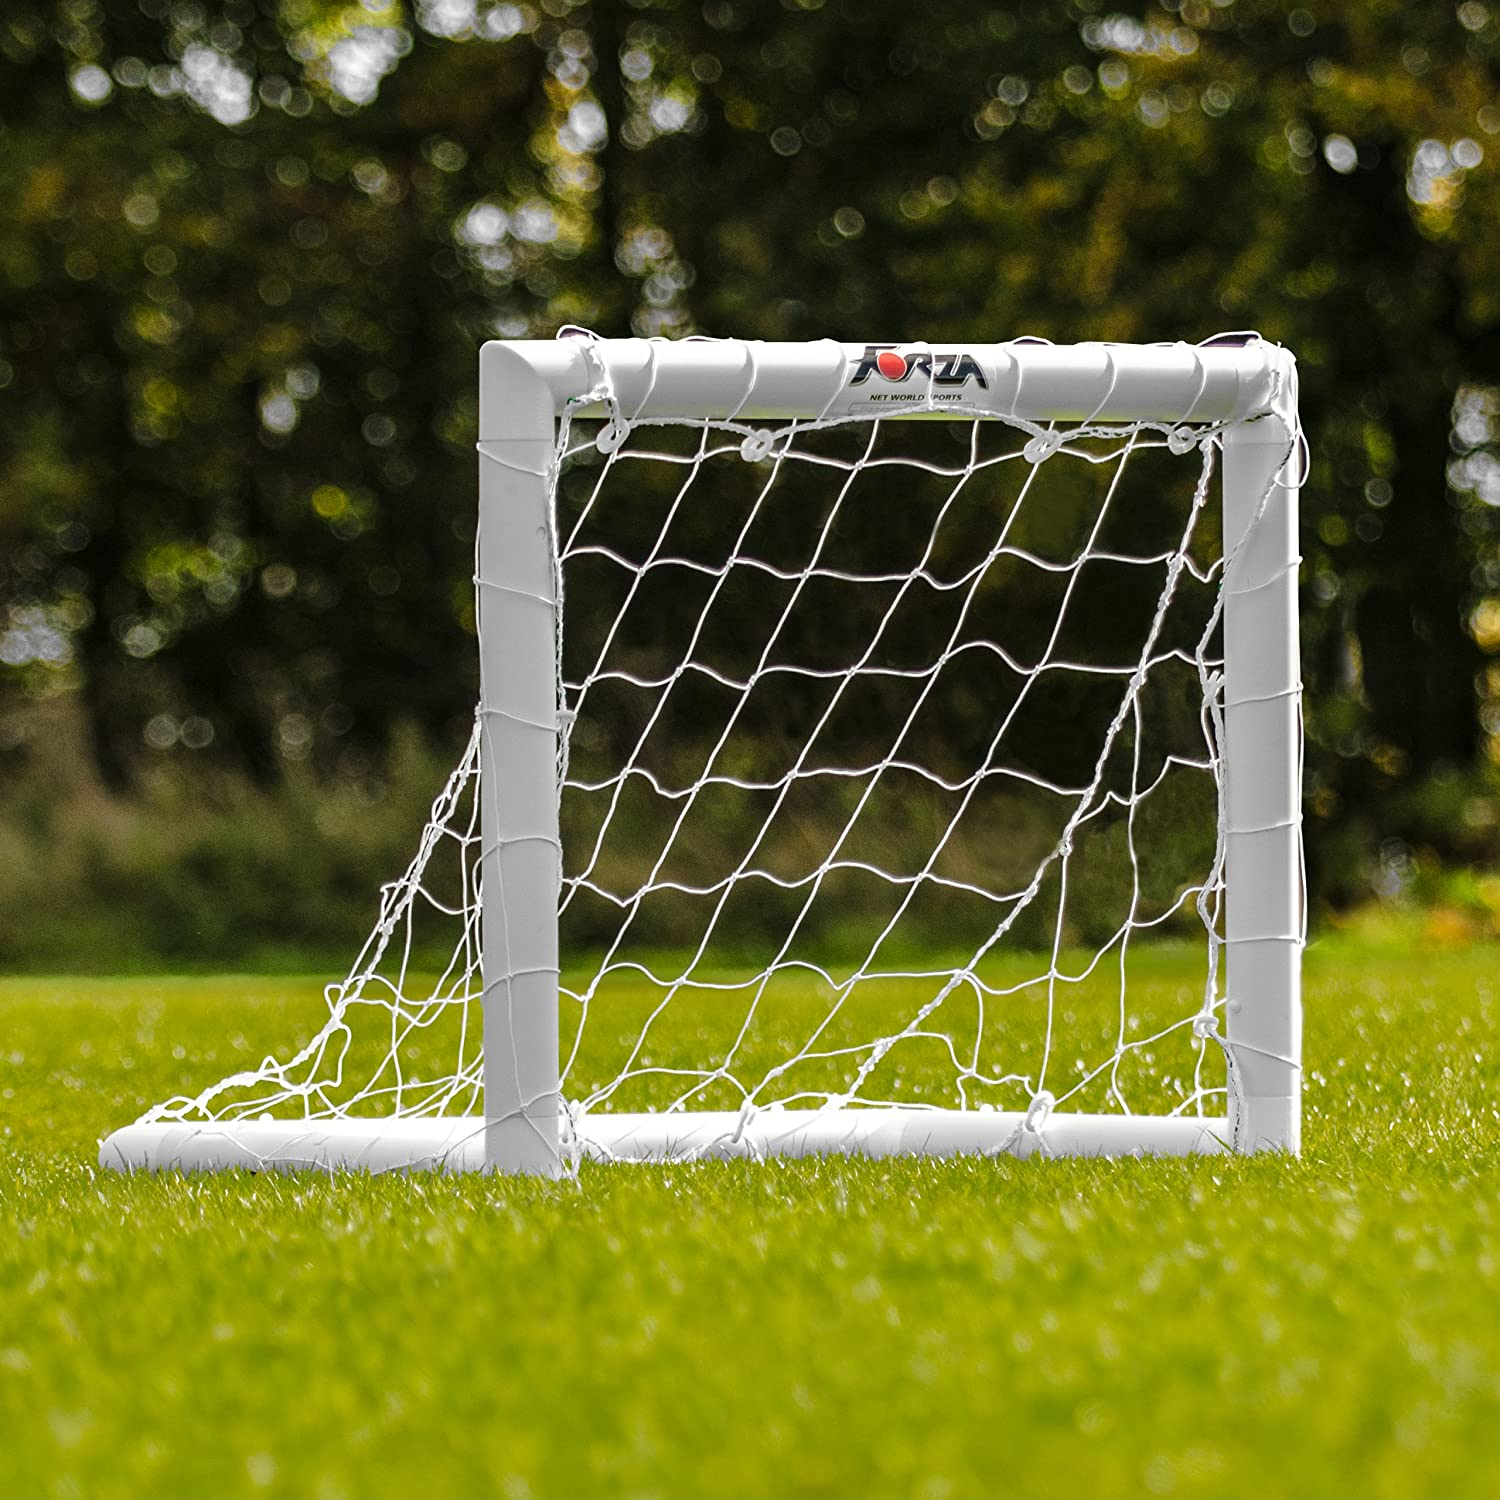 amazon com forza kids soccer goal huge 75 introductory sale